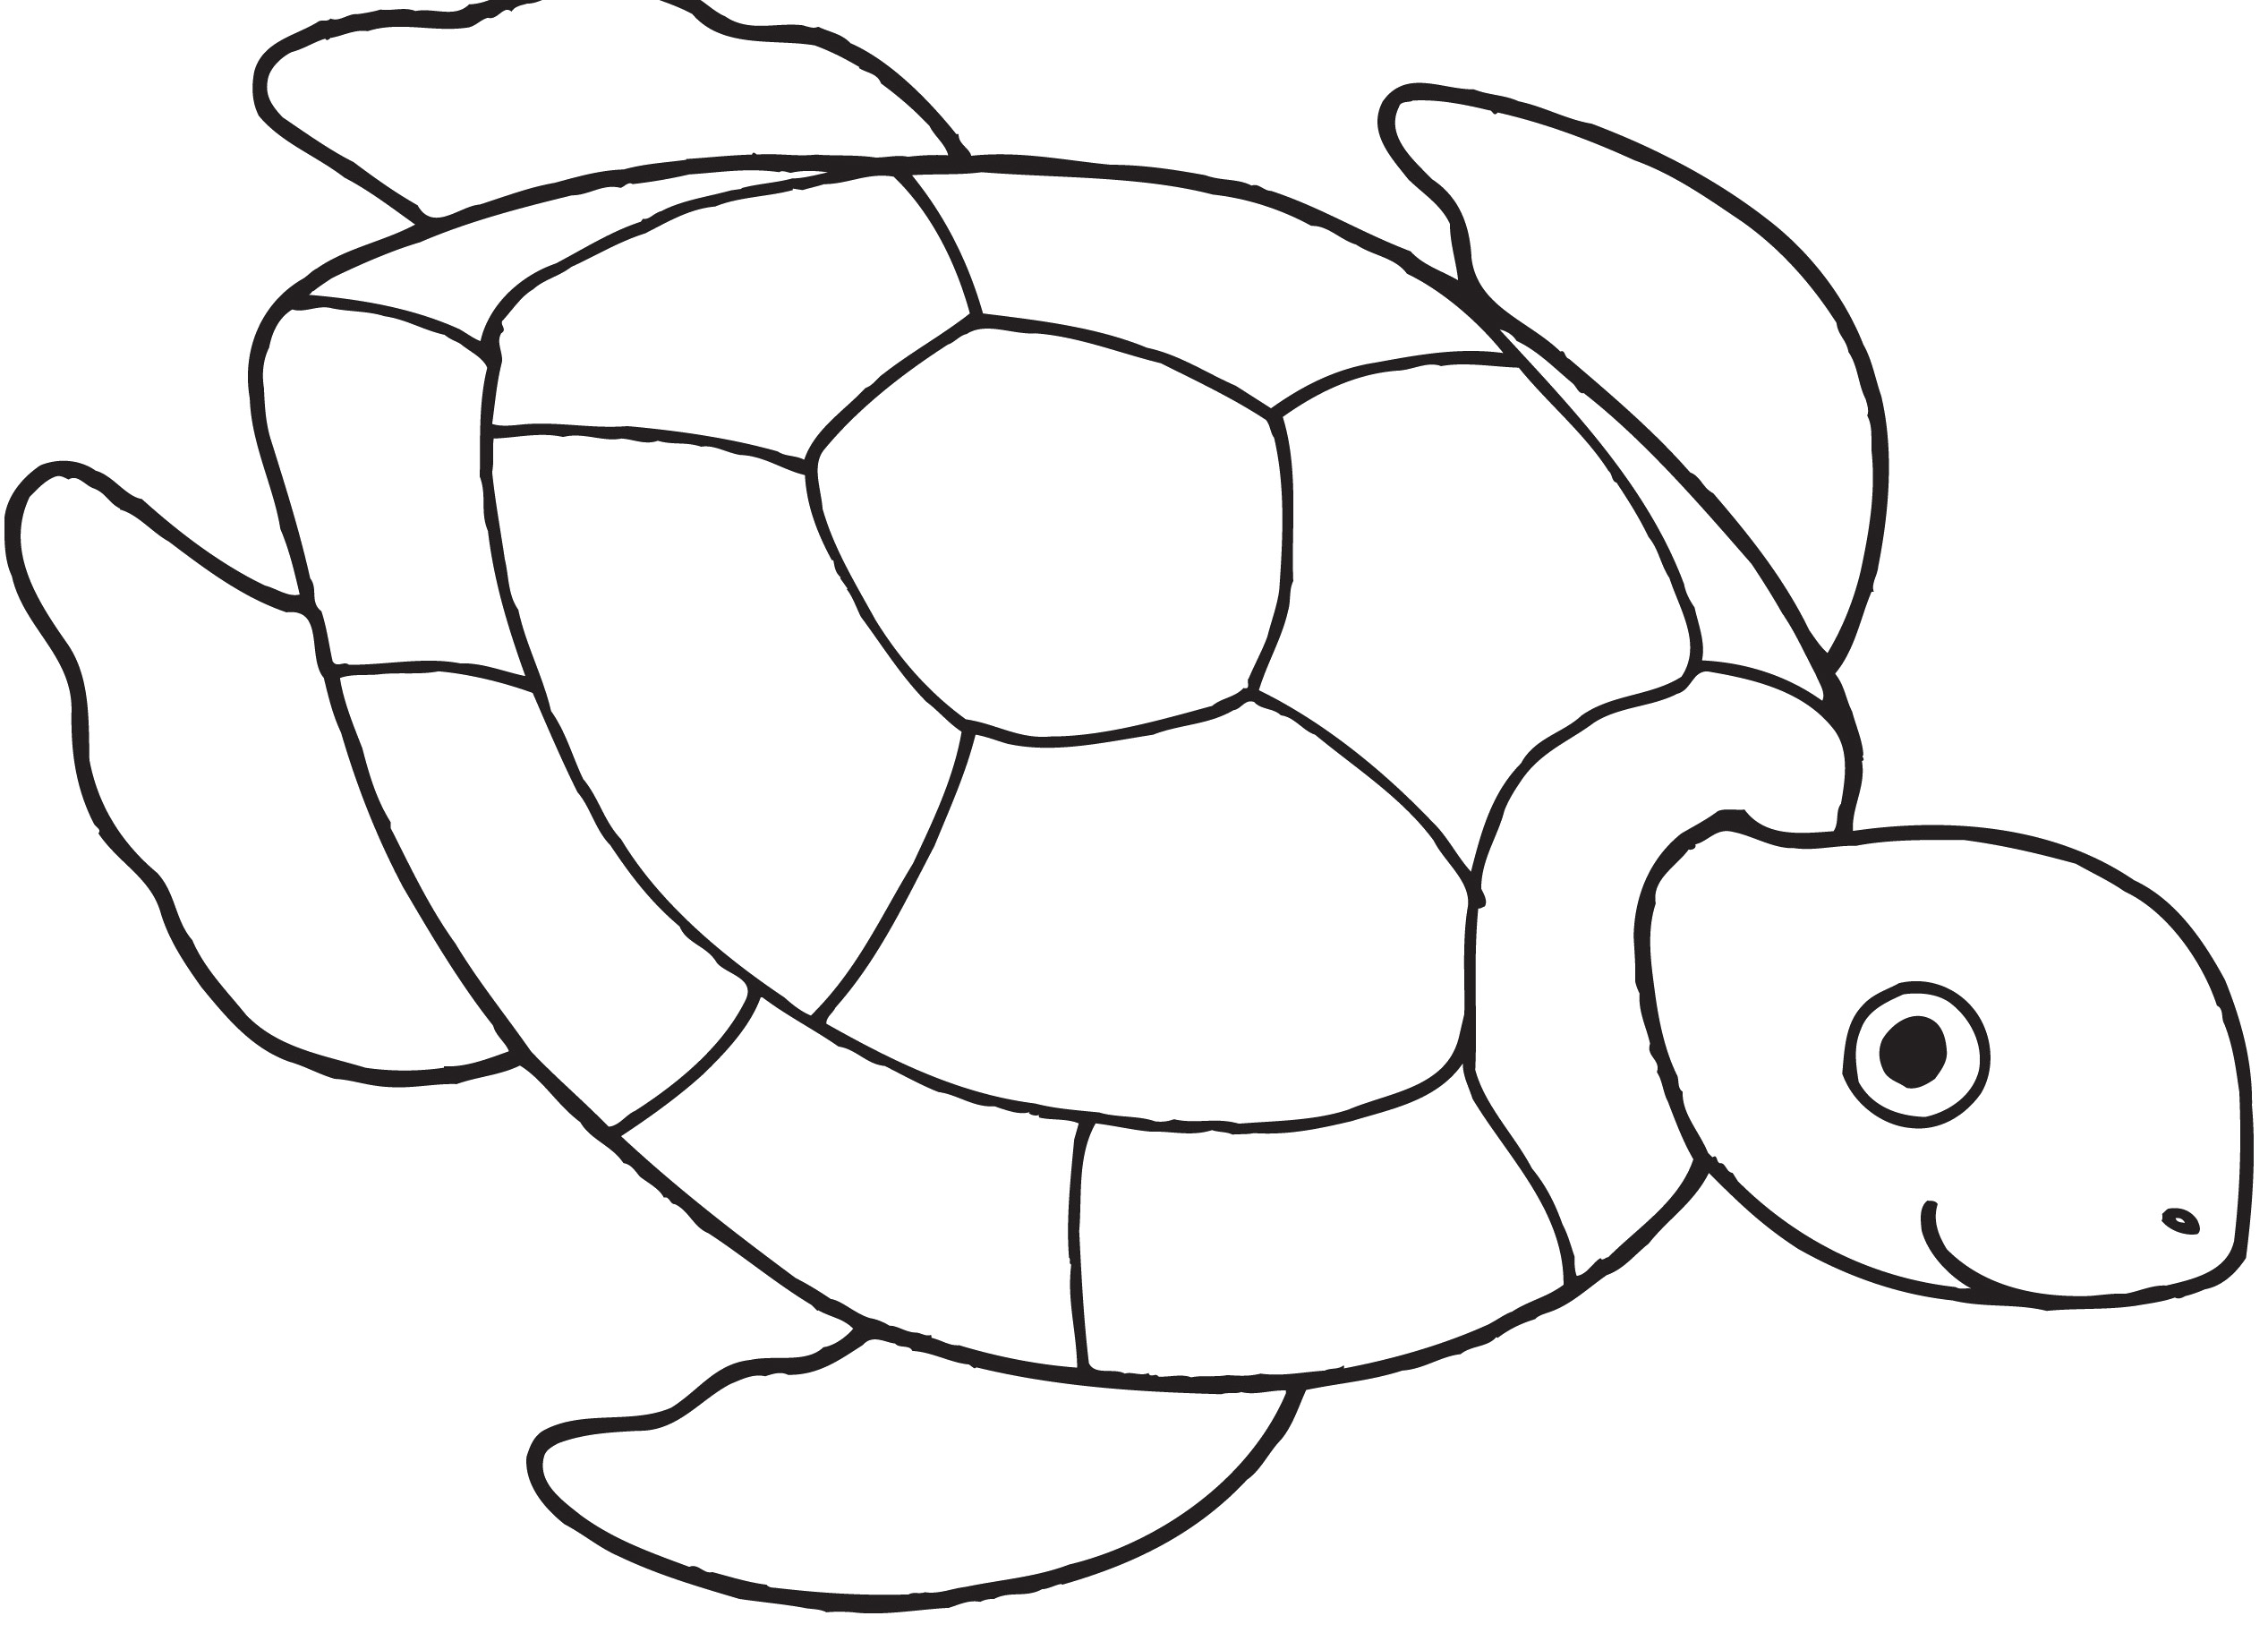 2534x1824 Printable Earth Coloring Pages Free Download Best Image Ideas